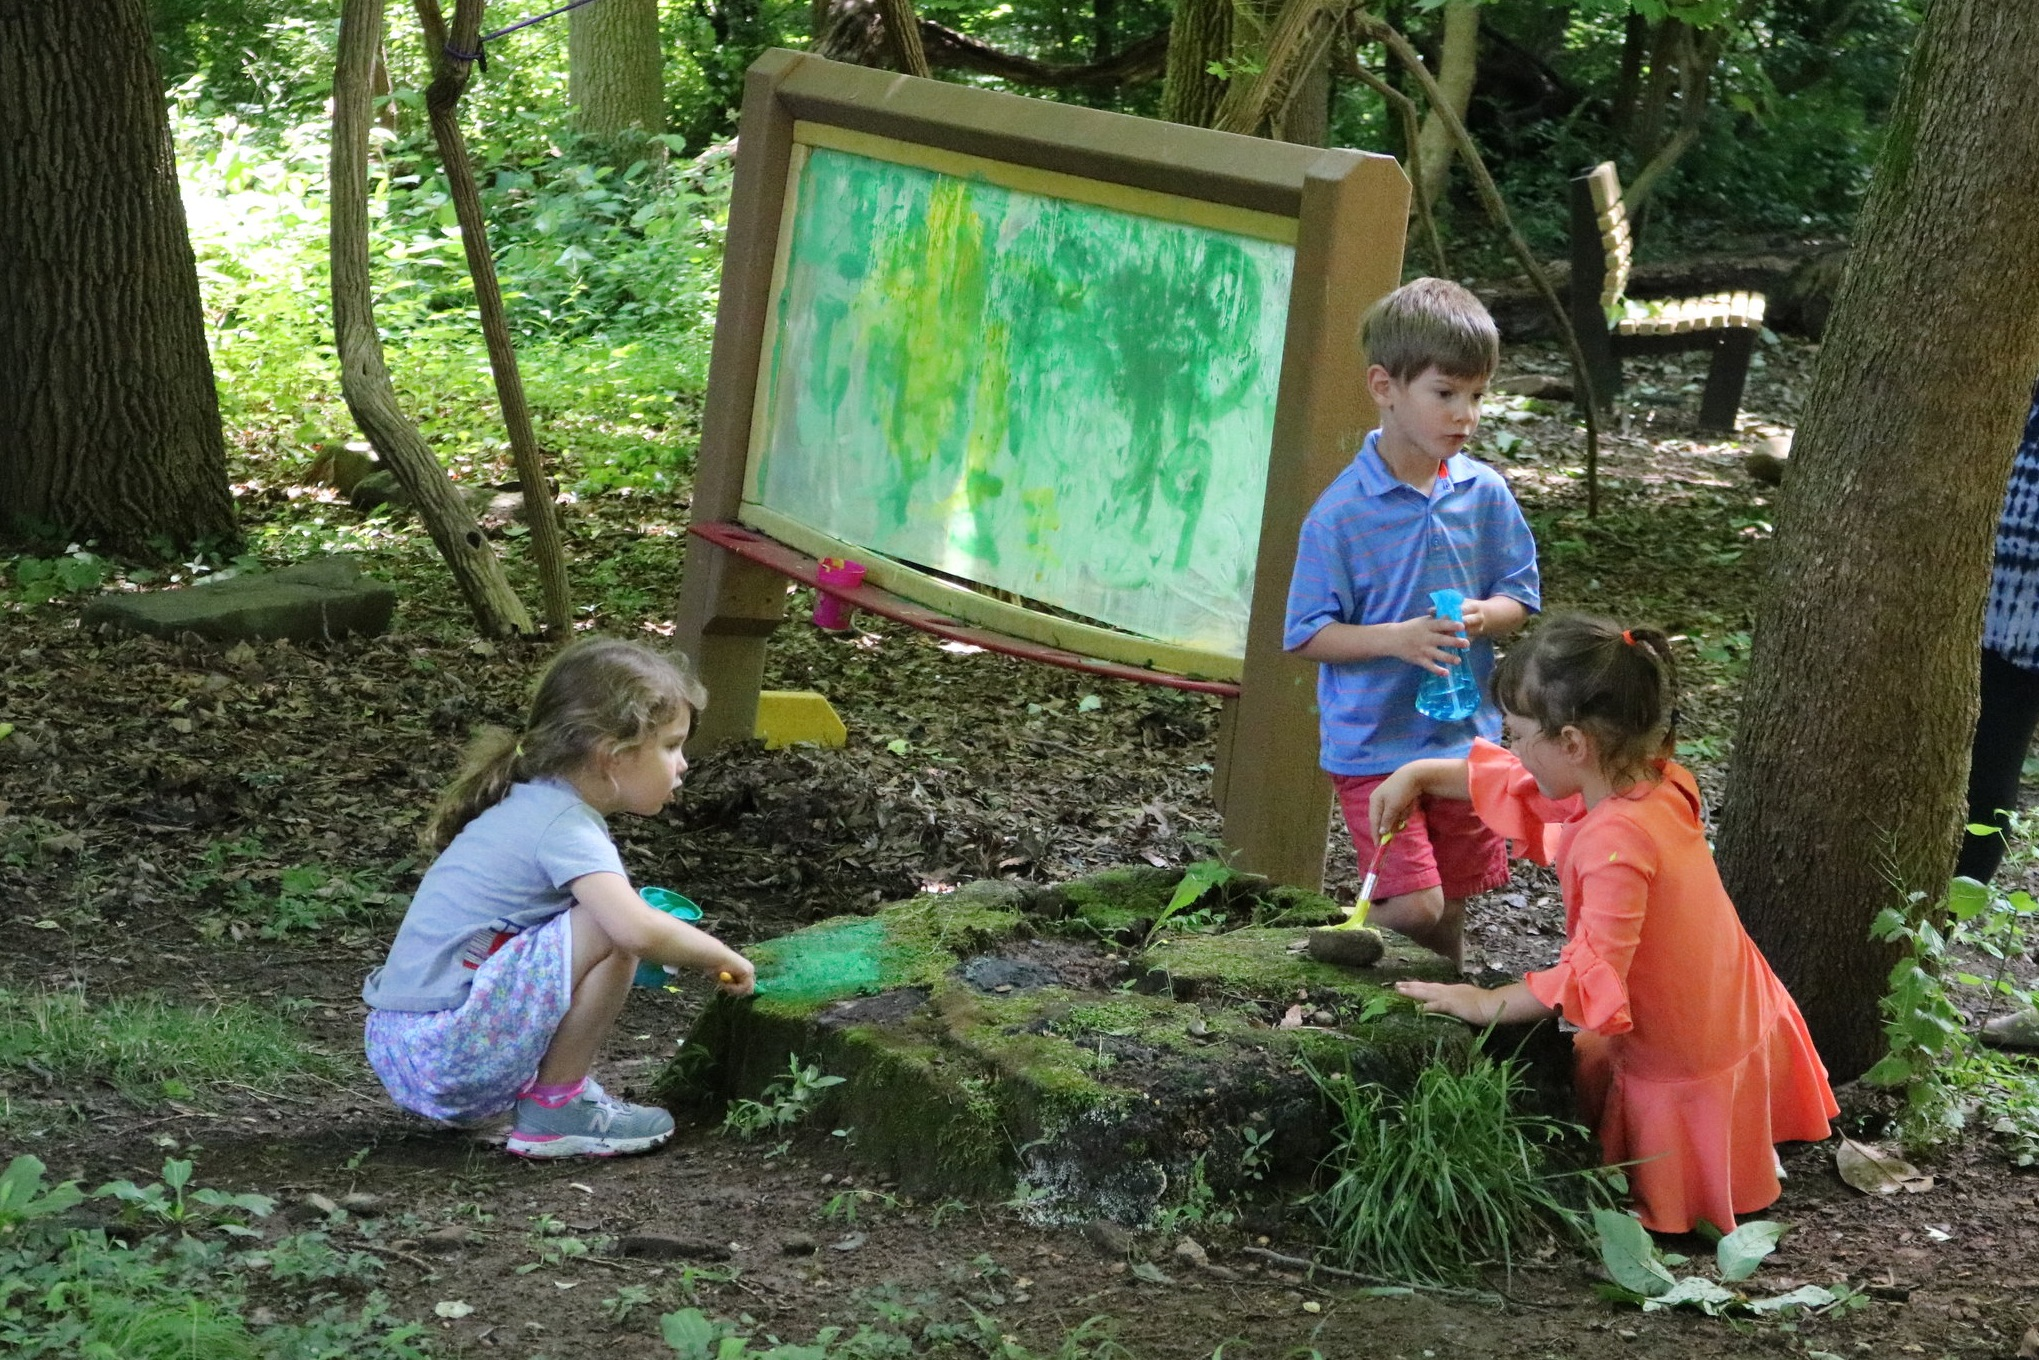 Three preschoolers playing outside, painting rocks in forest